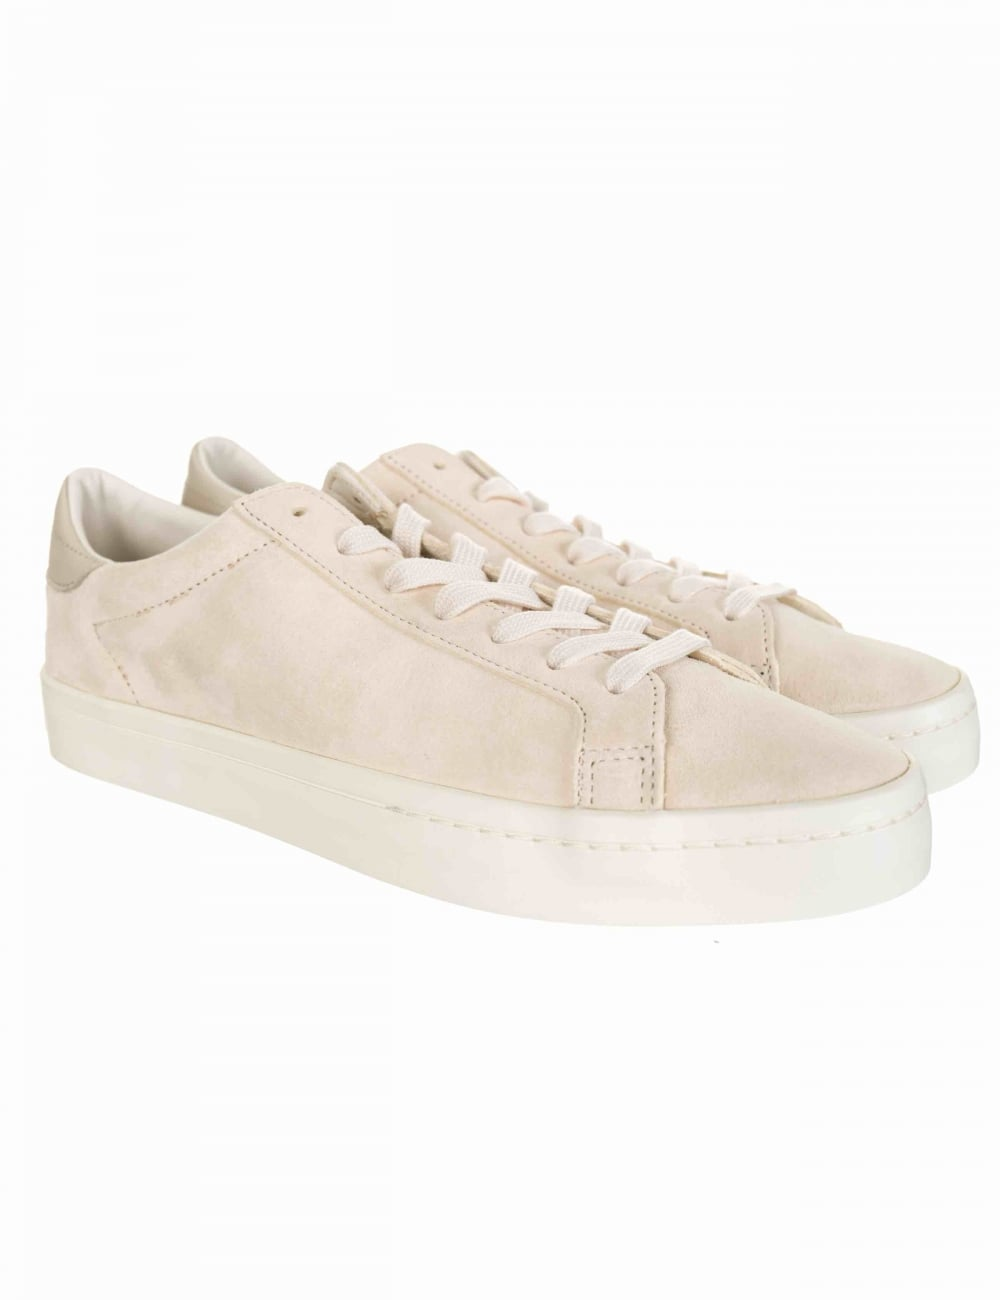 premium selection f7731 ddc31 Adidas Originals Court Vantage Shoes - Clear Brown Chalk White